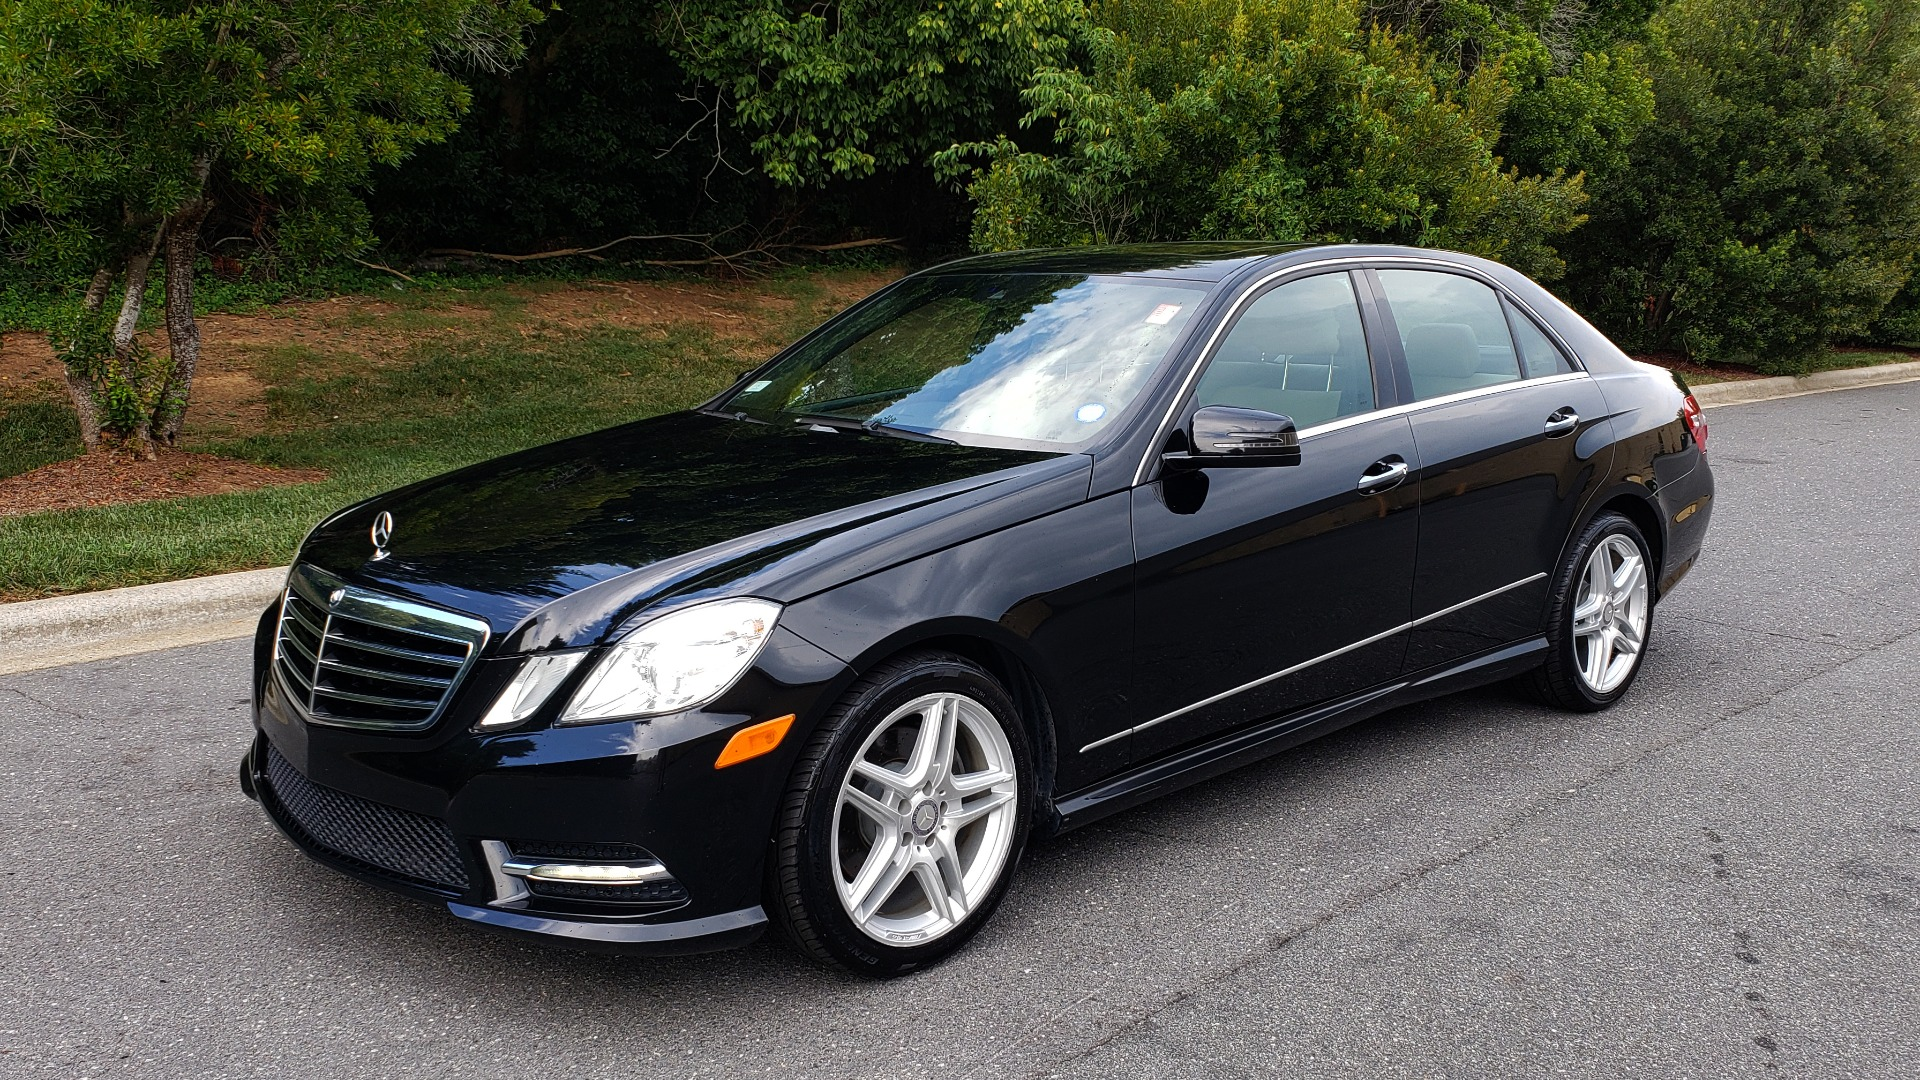 Used 2013 Mercedes-Benz E-CLASS E 350 SPORT / PREM PKG / NAV / SUNROOF / LANE TRACKING / BSA for sale $17,995 at Formula Imports in Charlotte NC 28227 1